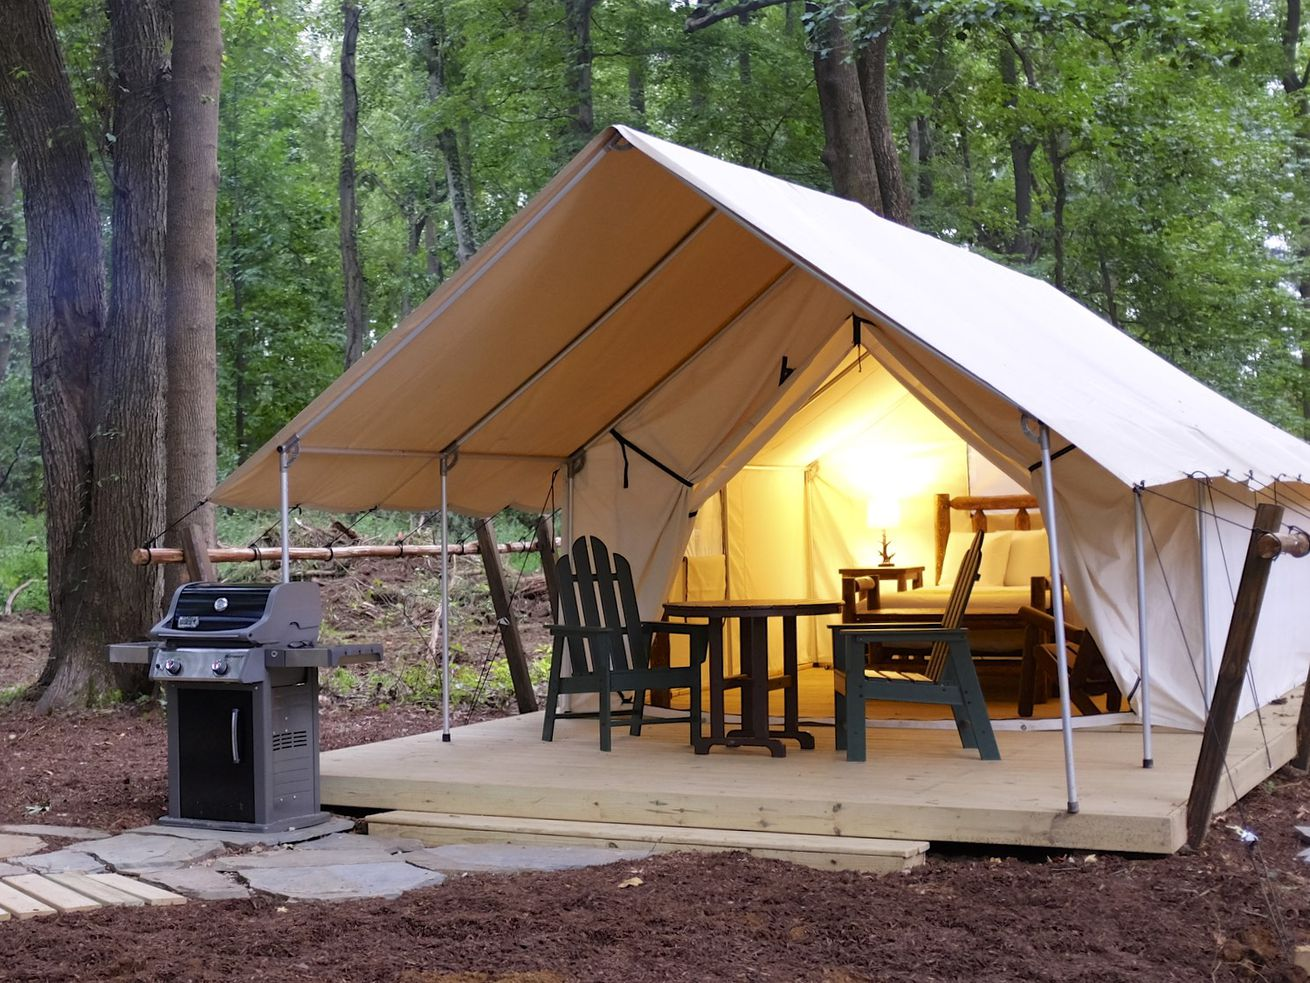 Glamping is hotter than ever, just ask millennials